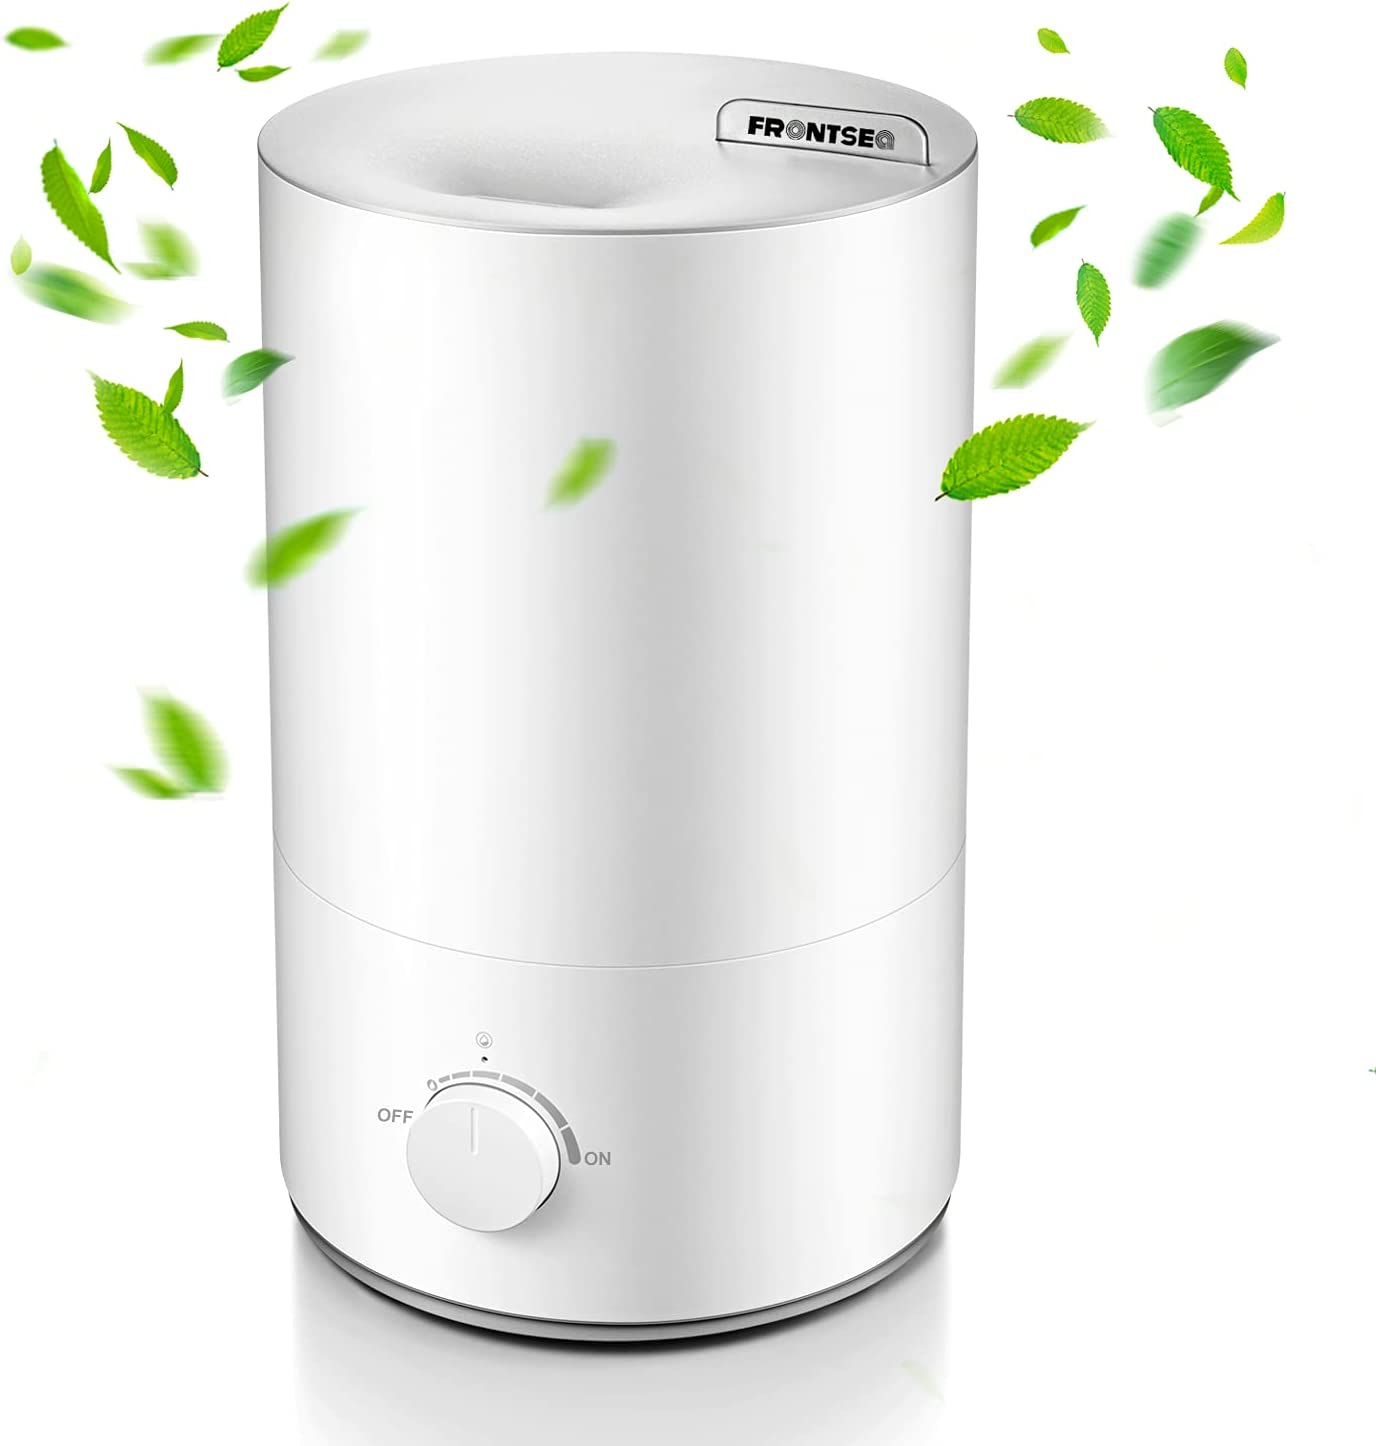 FRONTSEA Top Fill 25% 40% OFF Cheap Sale OFF Humidifiers for room Bedroom Baby living Kids